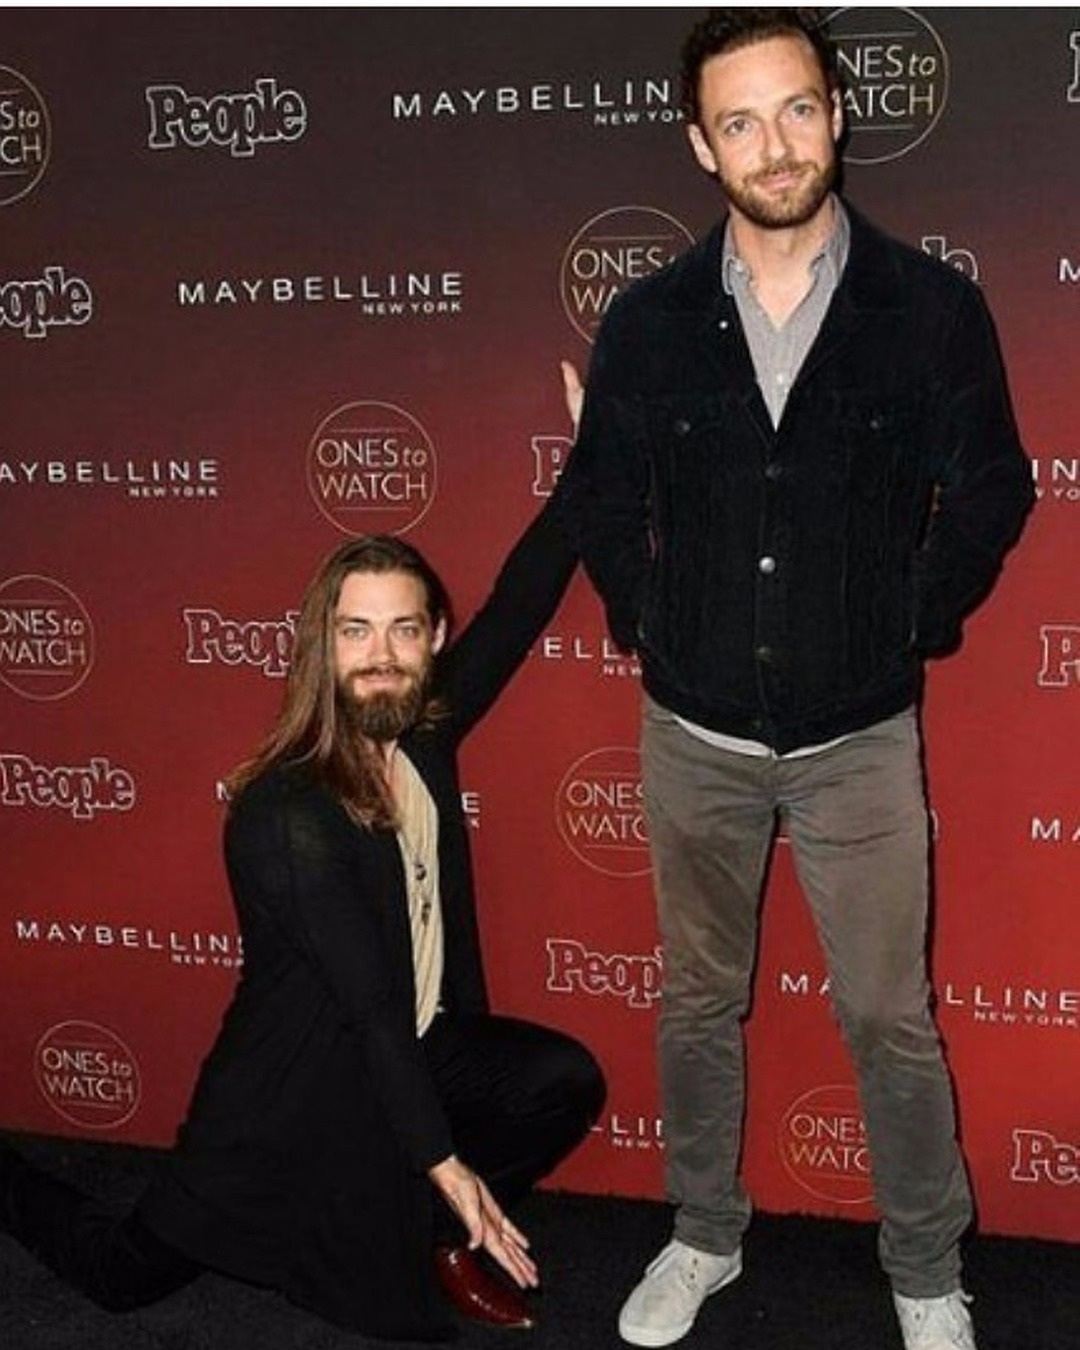 Ross Marquand and Tom Payne showing of their bromance chemistry. Payne uses his hands' gesture as if like he is presenting Ross Marquand in front of the camera at the People's event.